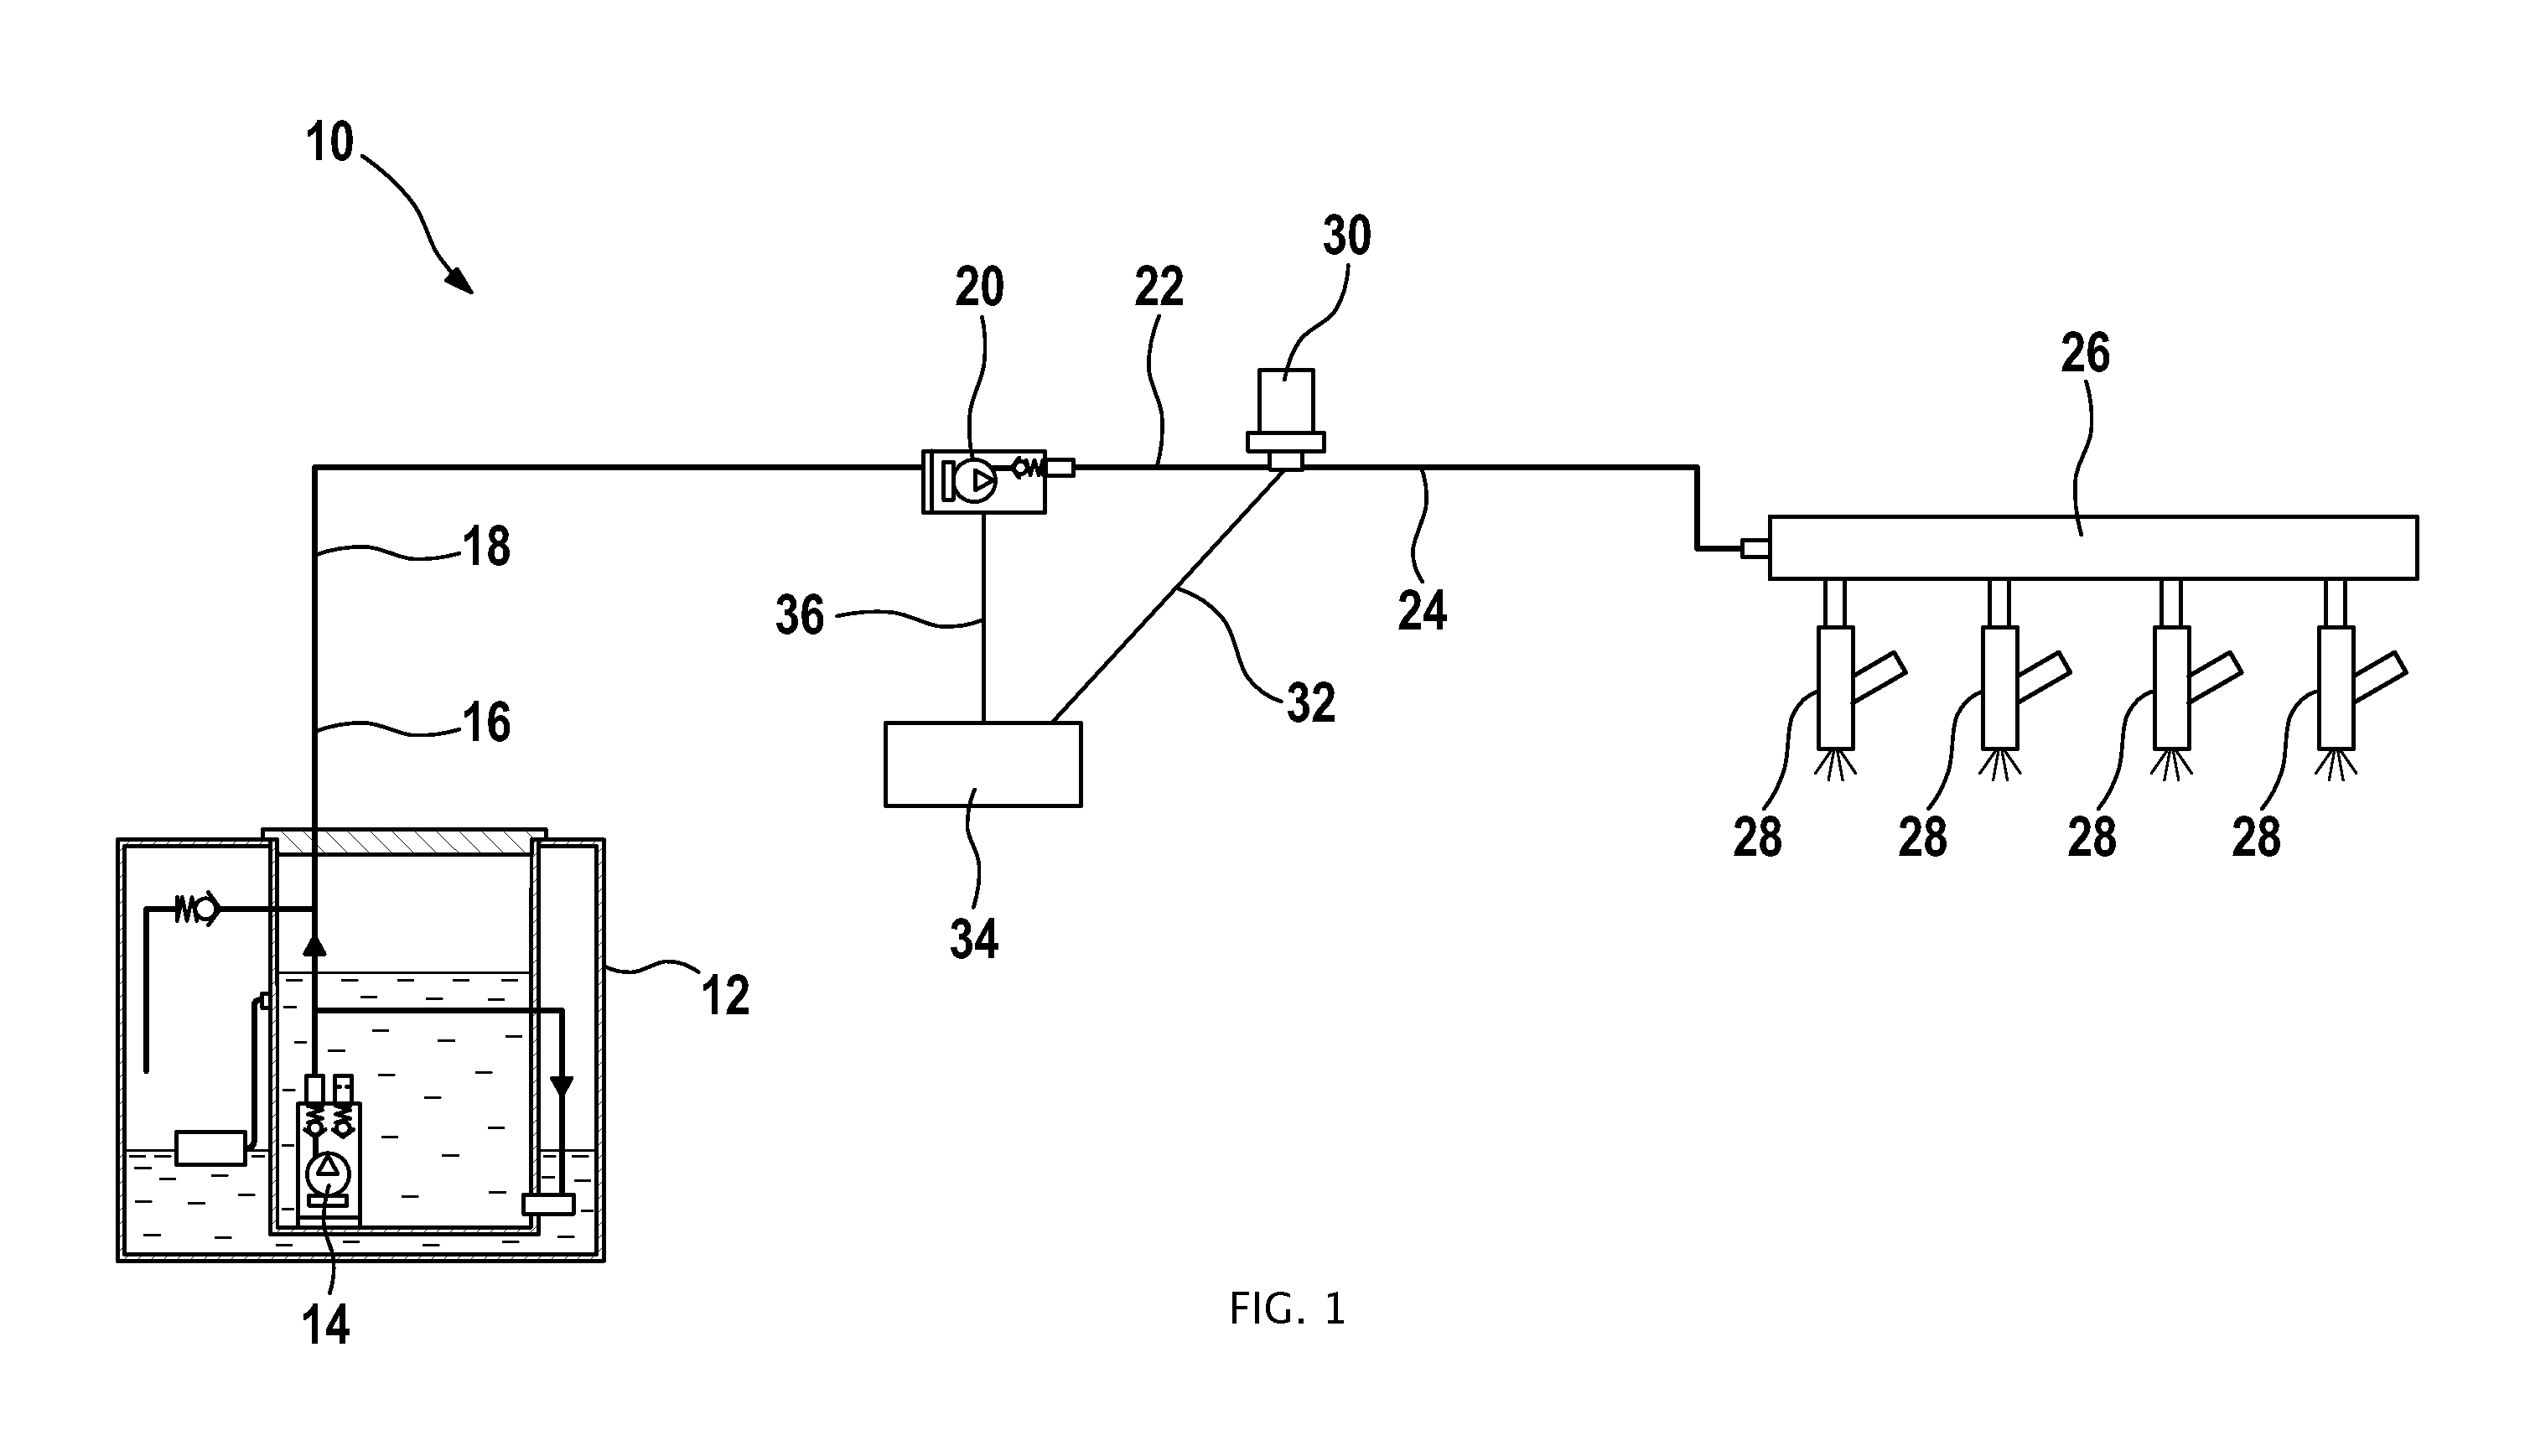 small resolution of wo2012089364a1 fuel supply system of an internal combustion engine with direct fuel injection